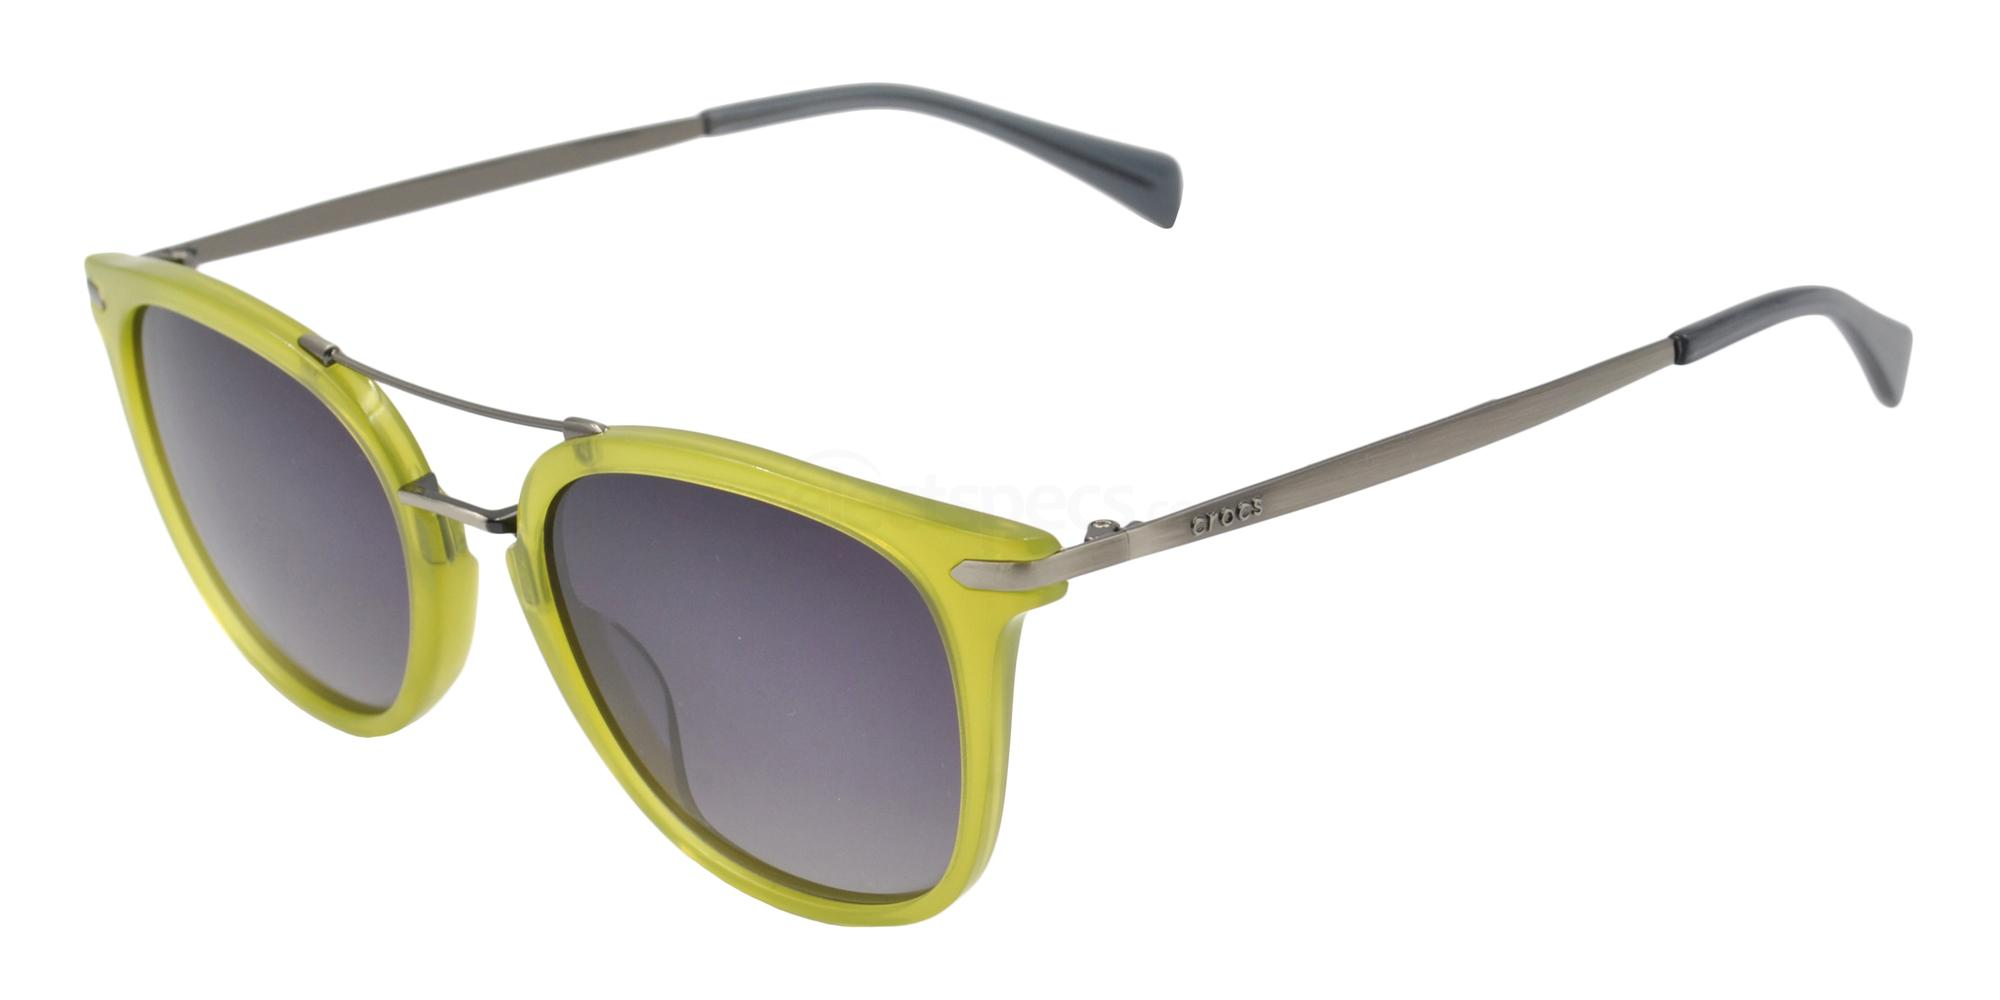 30GY CS045 Sunglasses, Crocs Eyewear